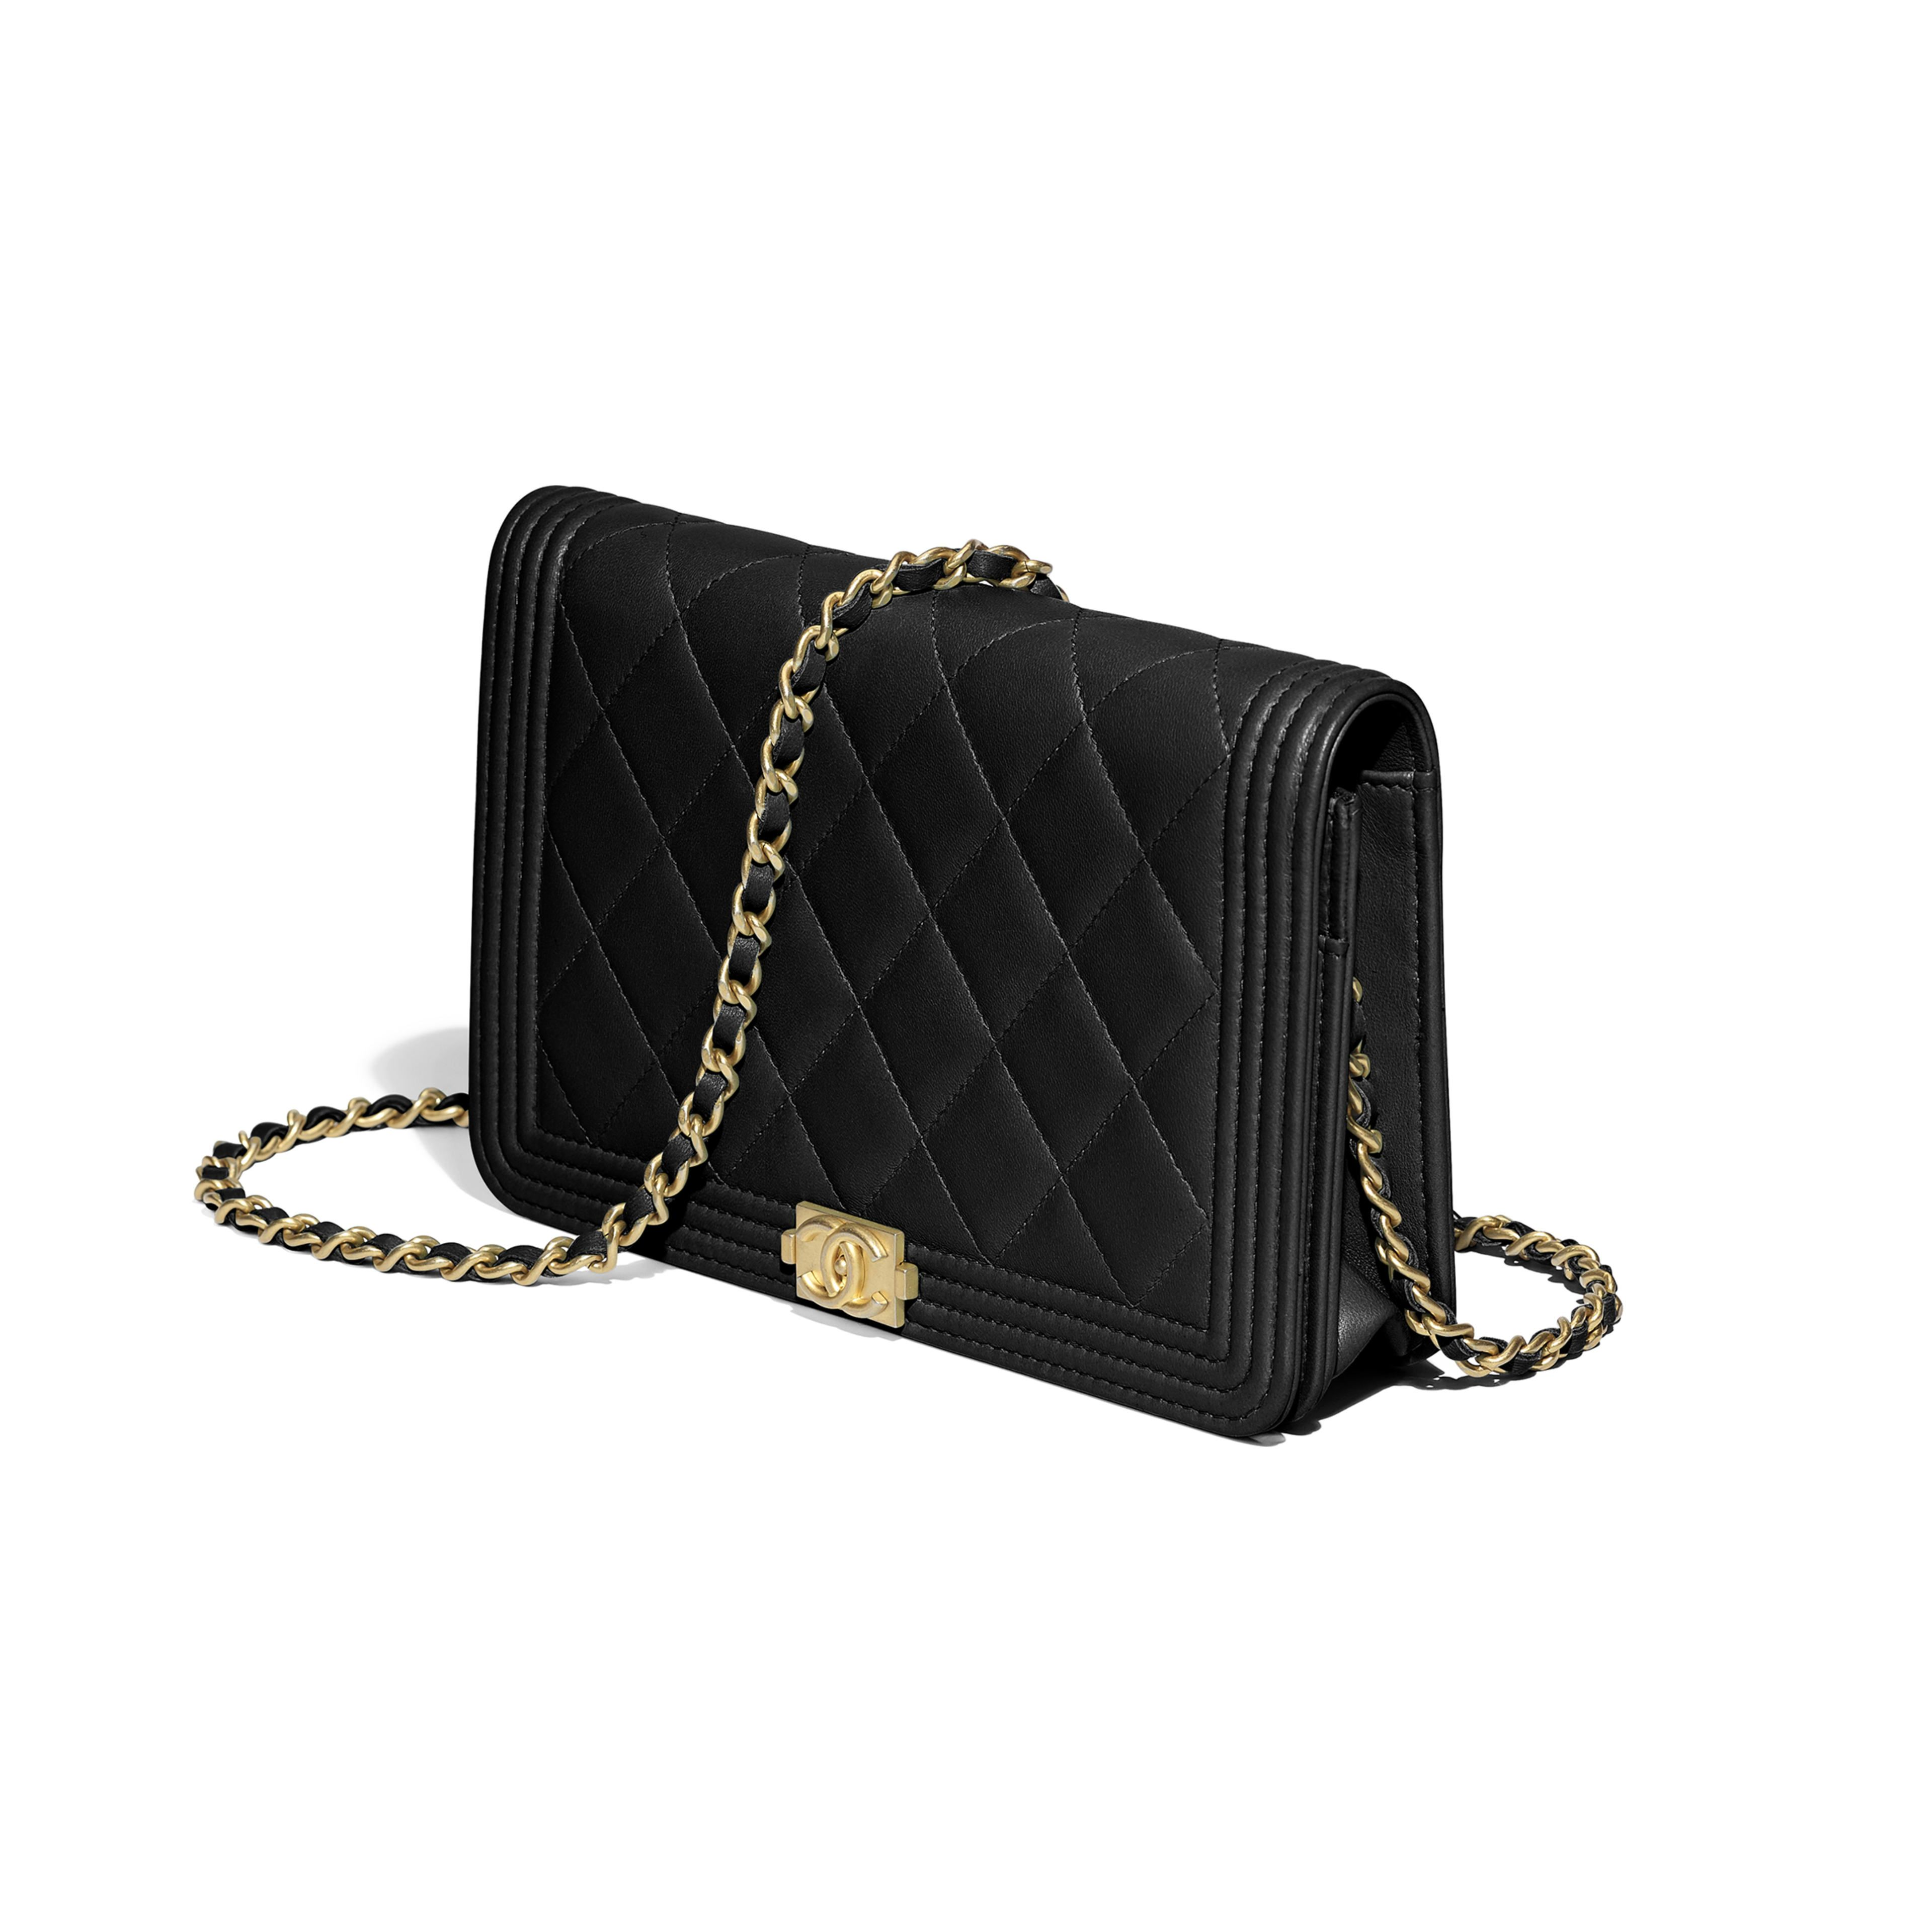 fc5b4d247a69 BOY CHANEL Wallet on Chain - Black - Lambskin & Gold-Tone Metal - Other  view - see full sized version